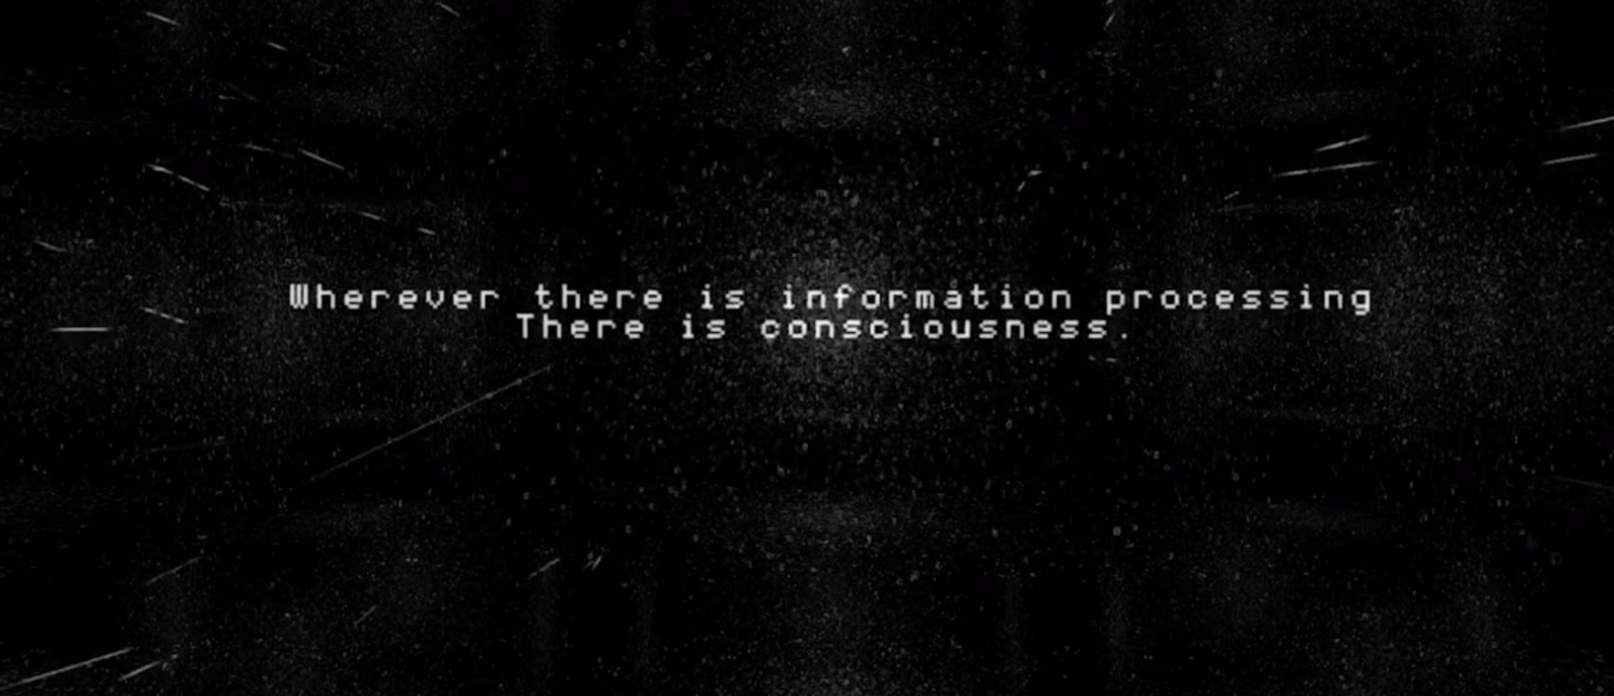 Wherever there is information processing there is consciousness - Mutek Audio Visual Show